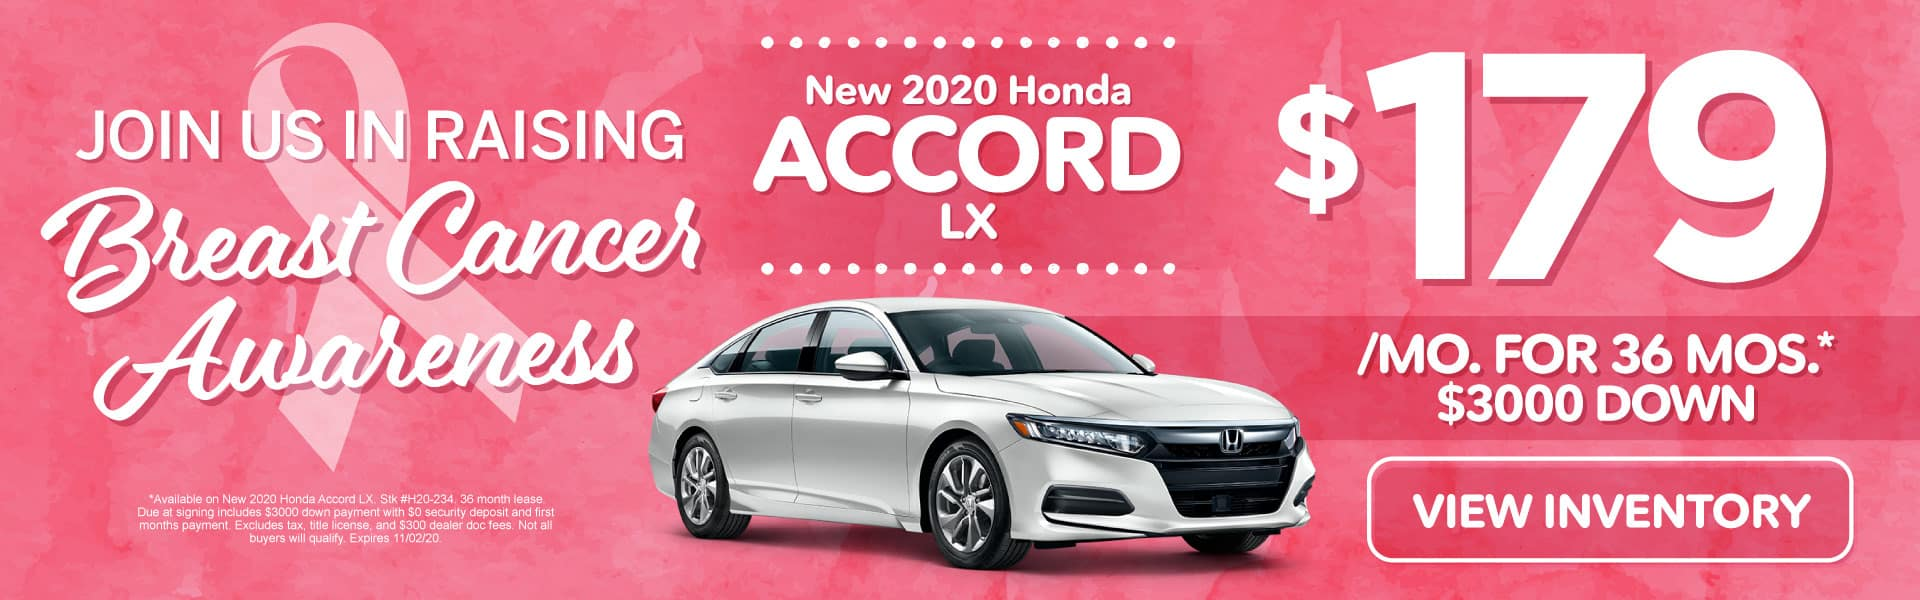 New 2020 Honda Accord | Lease for $179 a month | Click to View Inventory